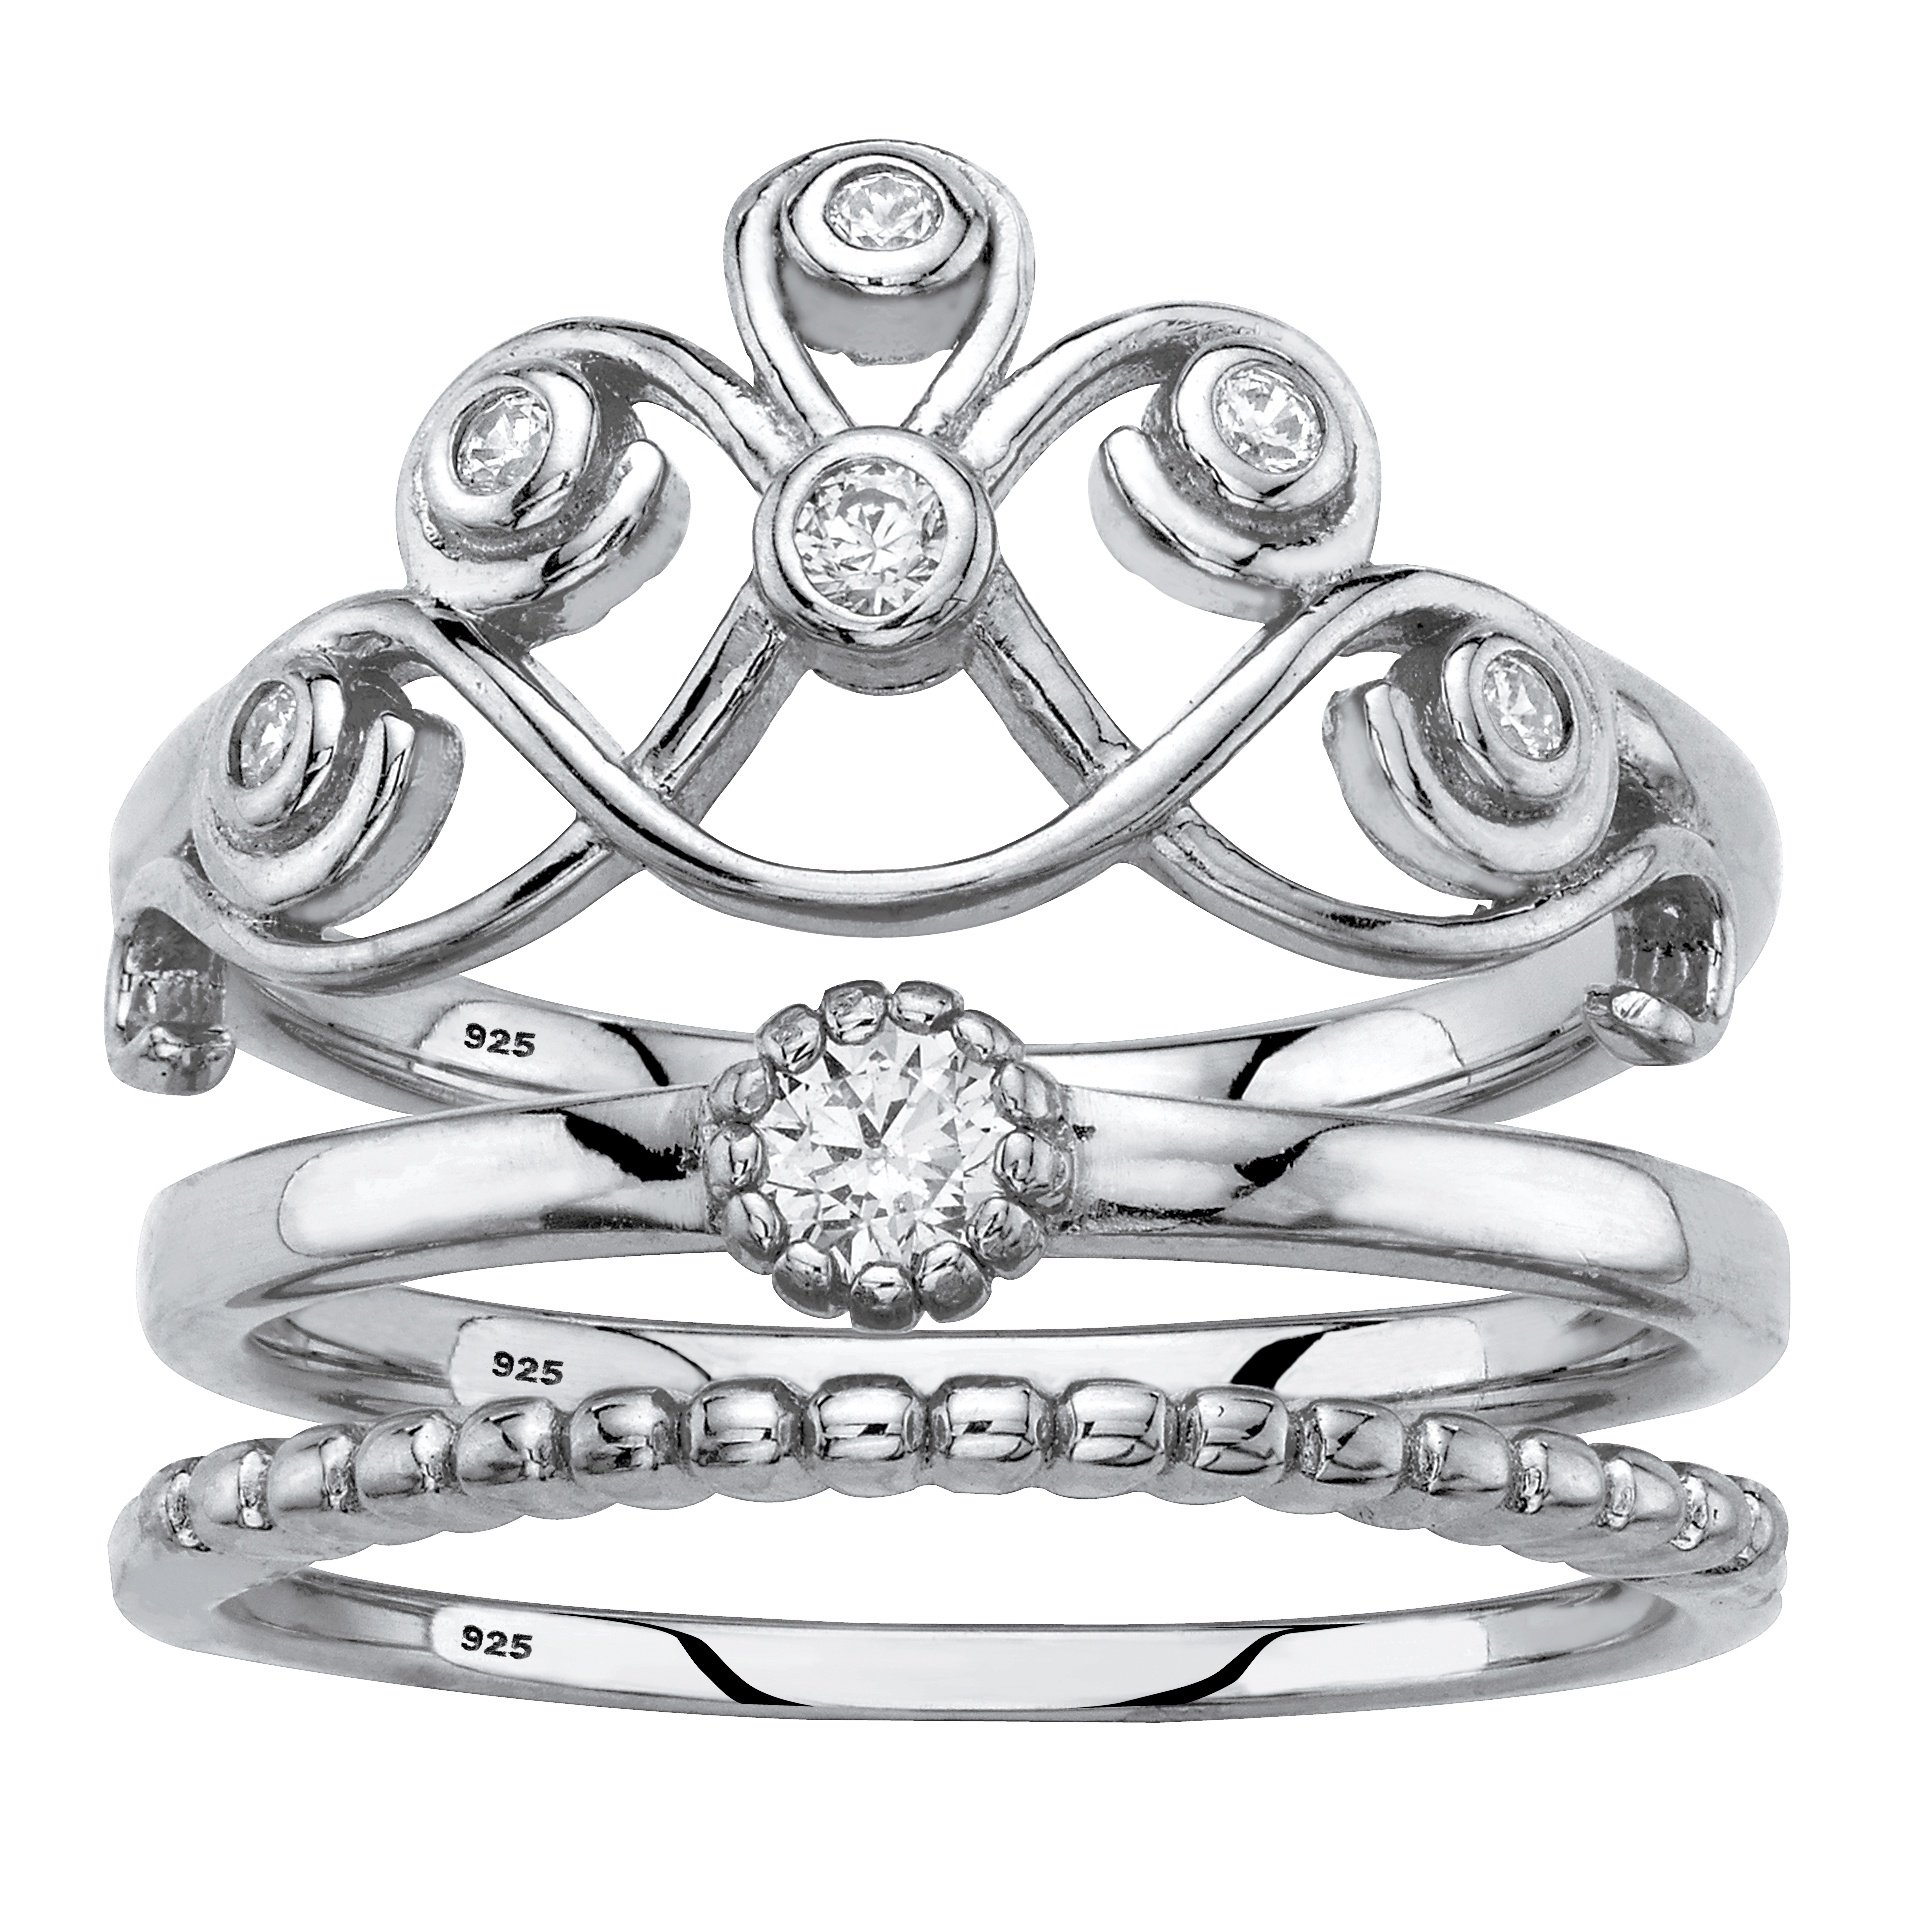 .925 Sterling Silver 3-Piece Stackable Crown Ring Set Round White Cubic Zirconia Size 6